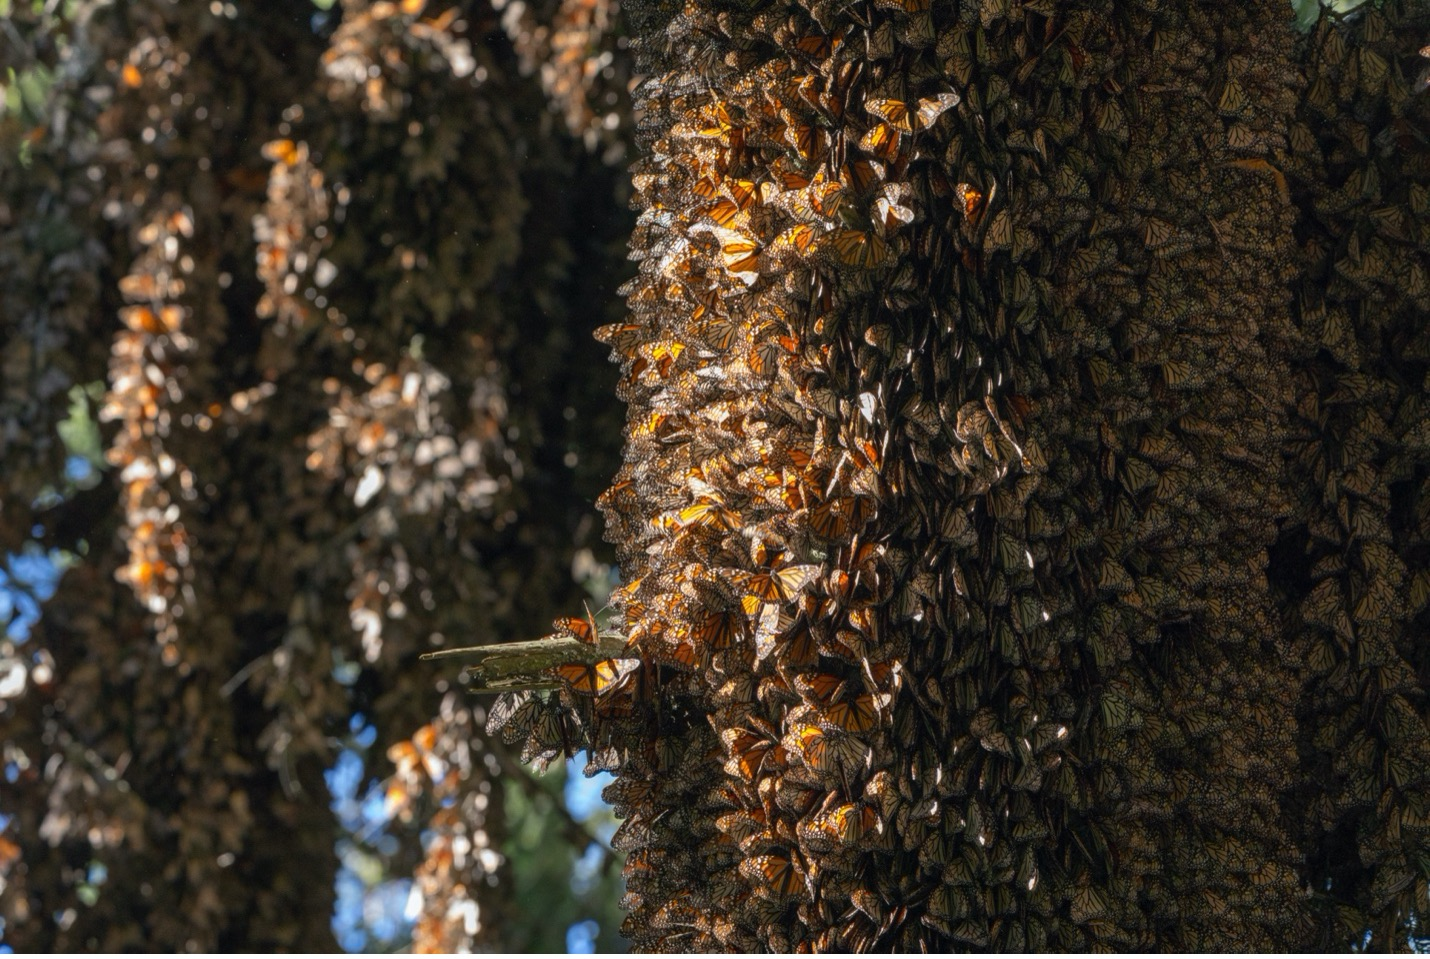 monarchs hang on tree trunks and branches in the shadows